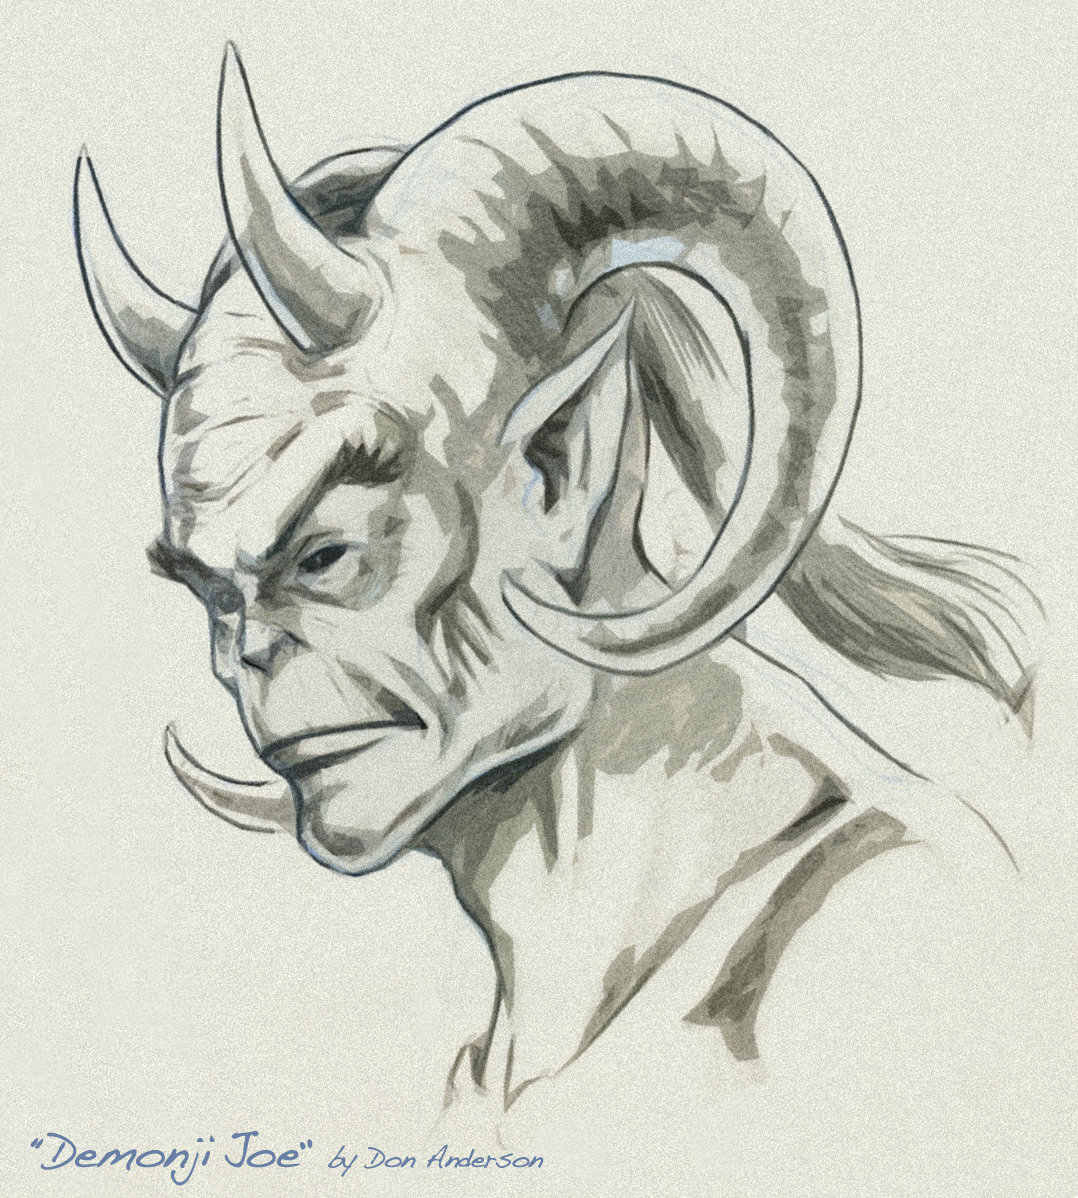 Concept drawing of Demonji Joe by Don Anderson